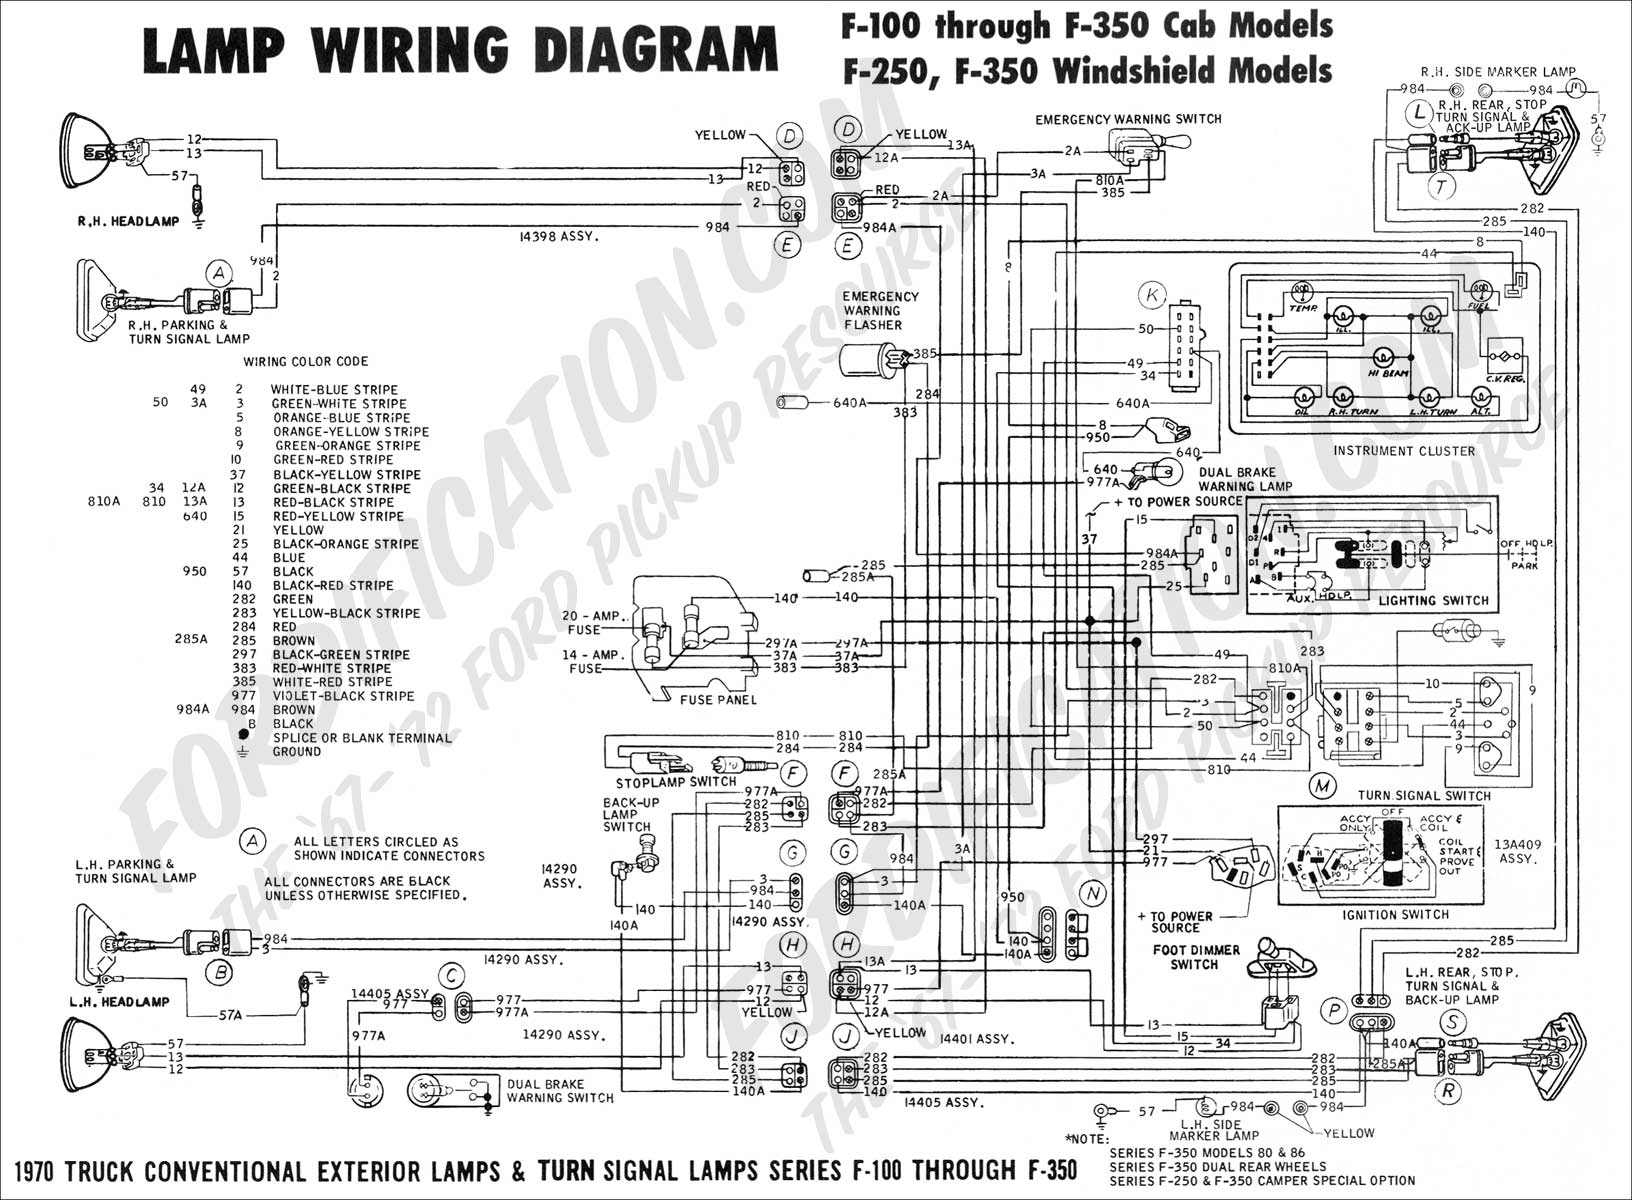 2003 Ford F550 Wiring Diagram | Wiring Diagram - Semi Truck Trailer Wiring Diagram